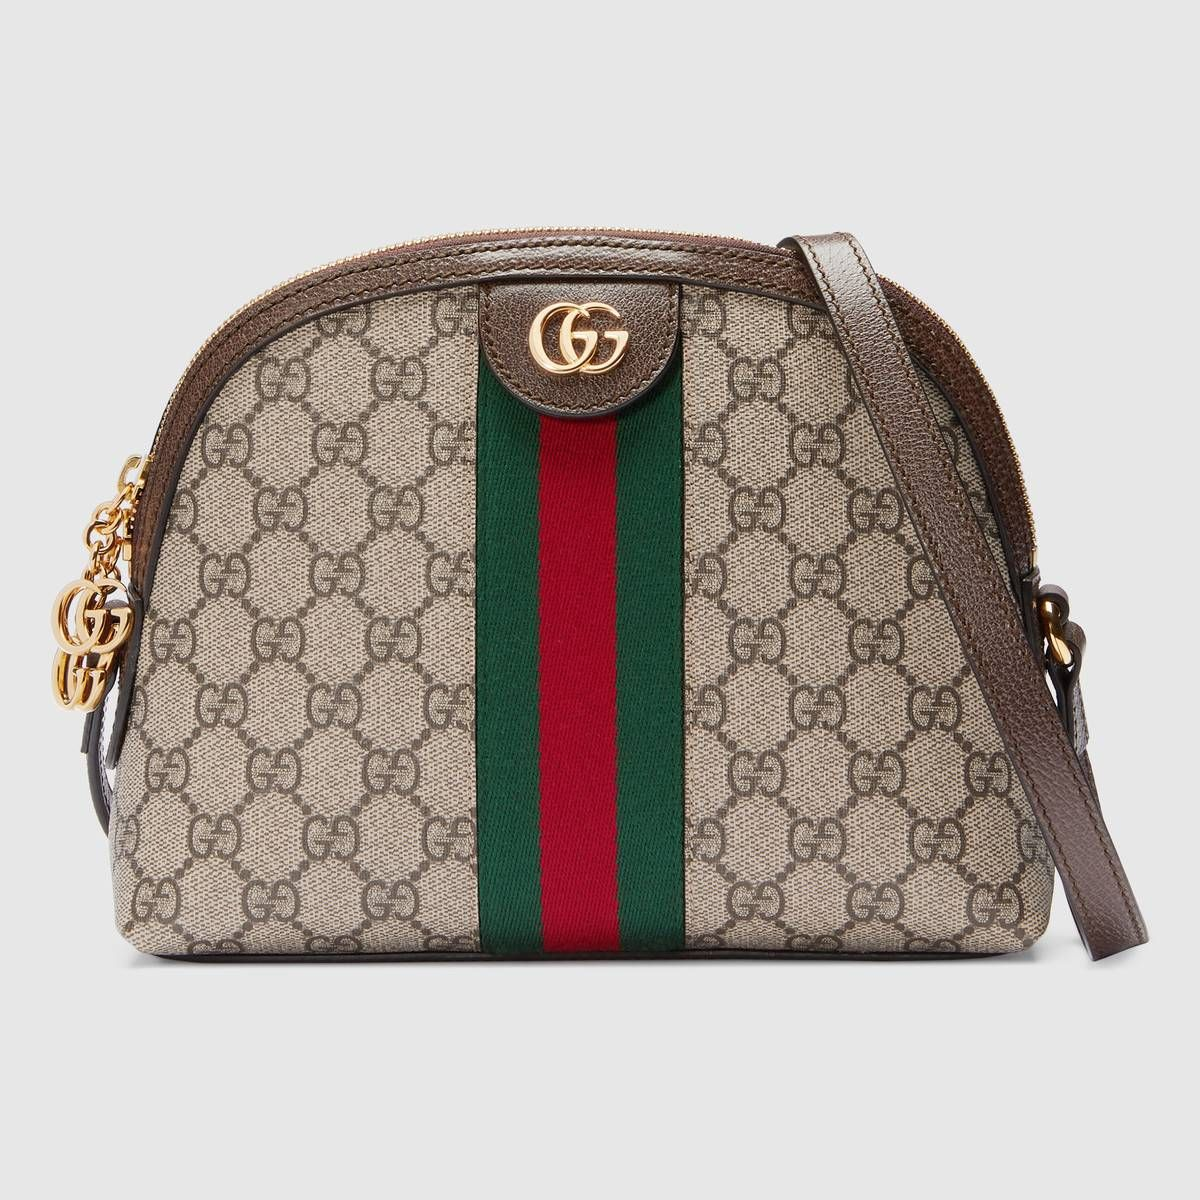 01b0694b7a1da Shop the Ophidia GG small shoulder bag by Gucci. Crafted in GG Supreme  canvas with